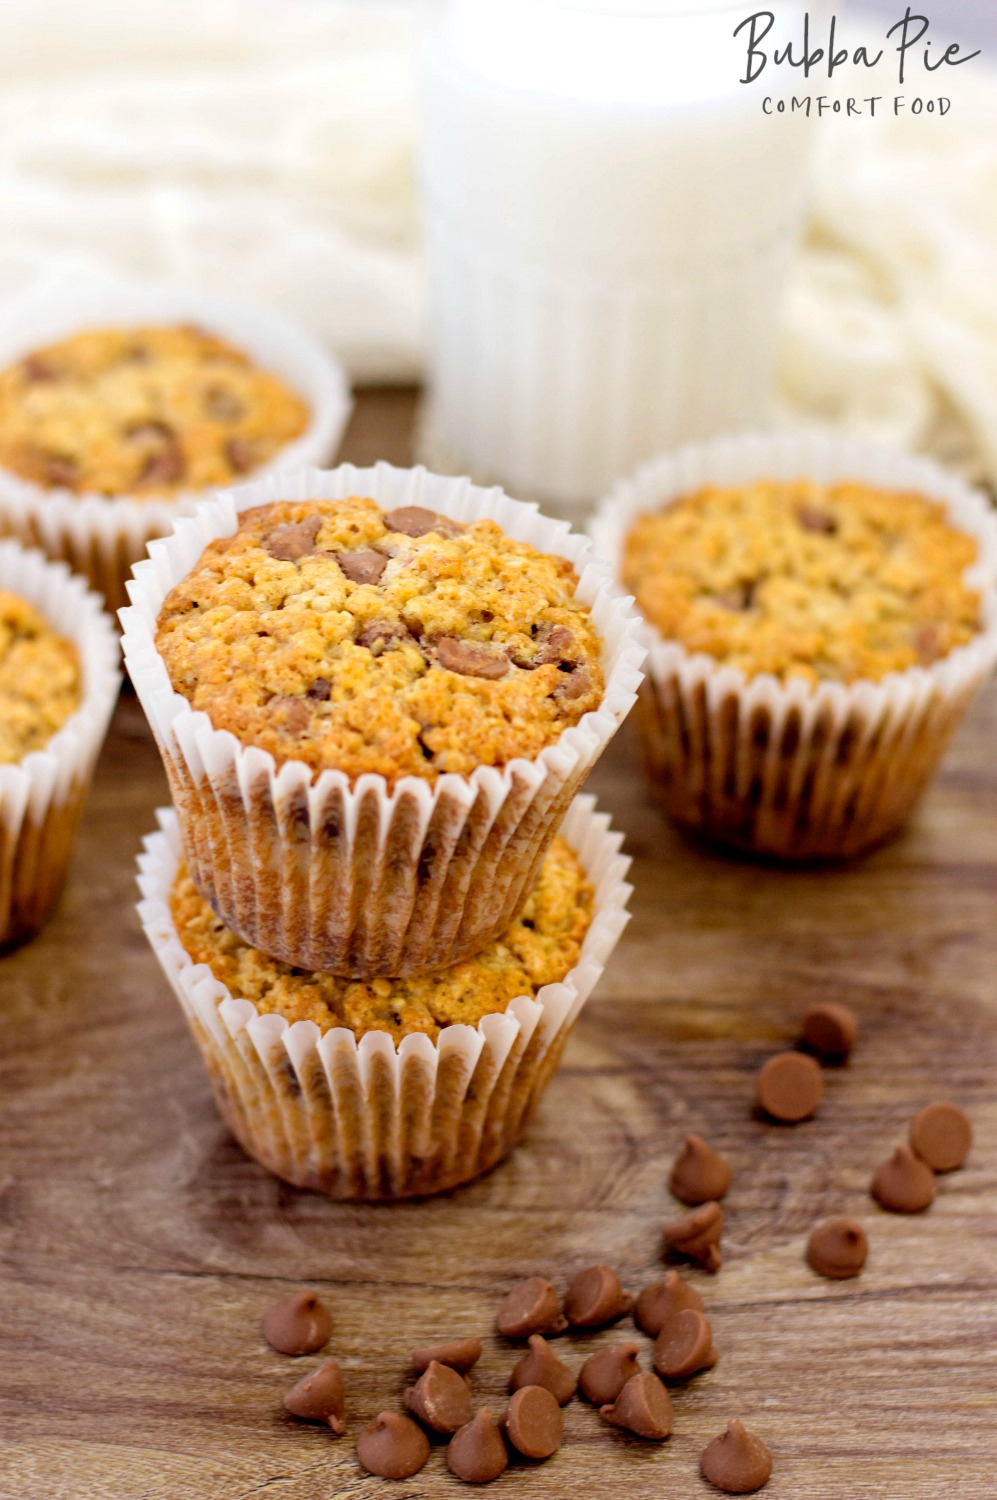 Breakfast Muffins are a great treat to start your day or perfect for an on-the-go breakfast